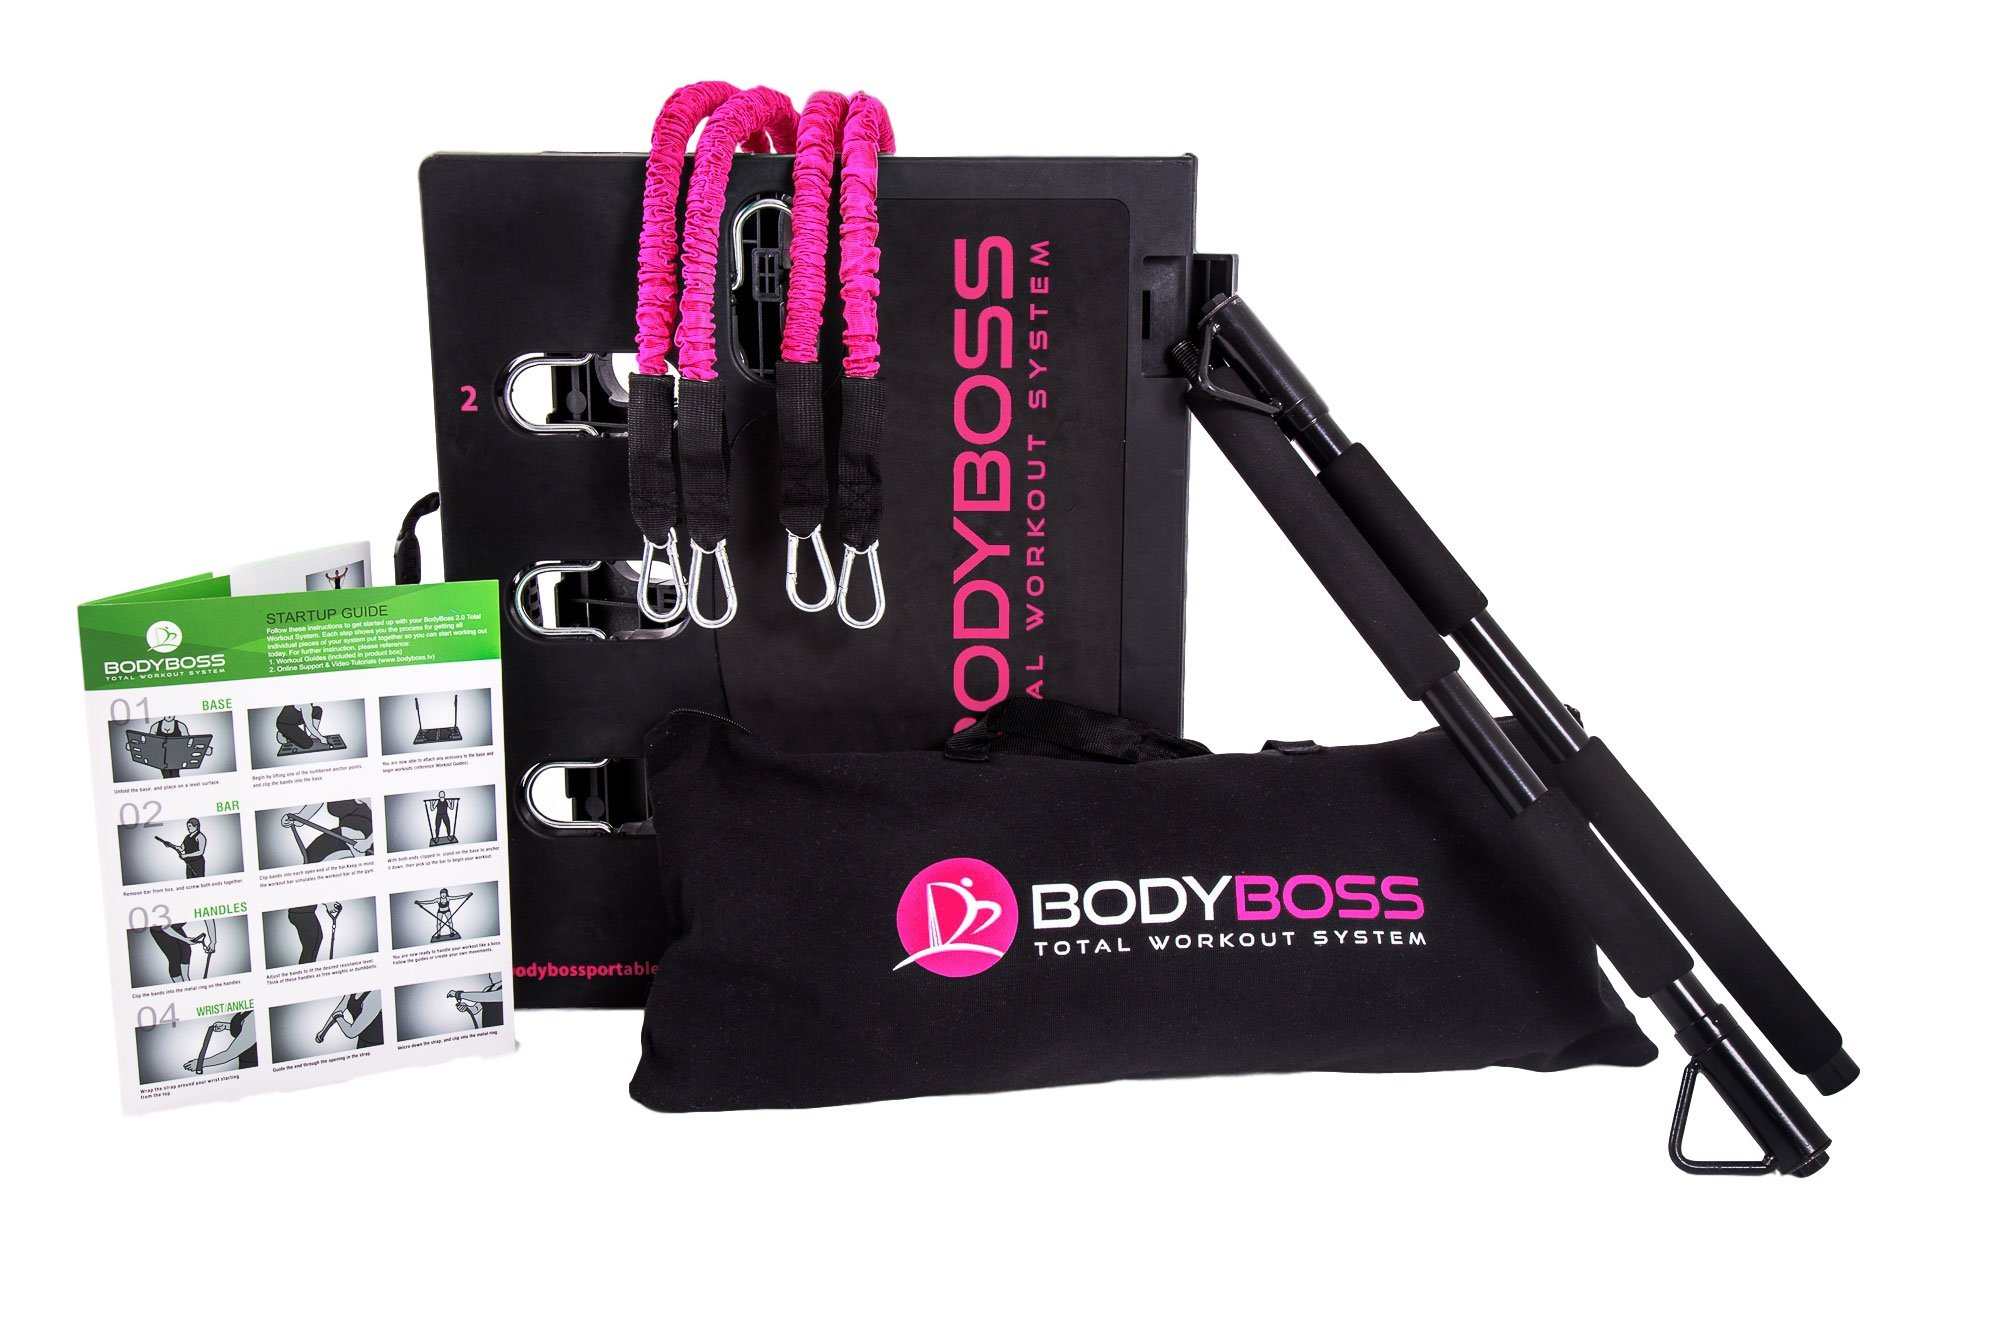 BodyBoss Home Gym 2.0 - Full Portable Gym - Full Body Workouts for Home, Travel or Anywhere You Take It. by BodyBoss (Image #2)